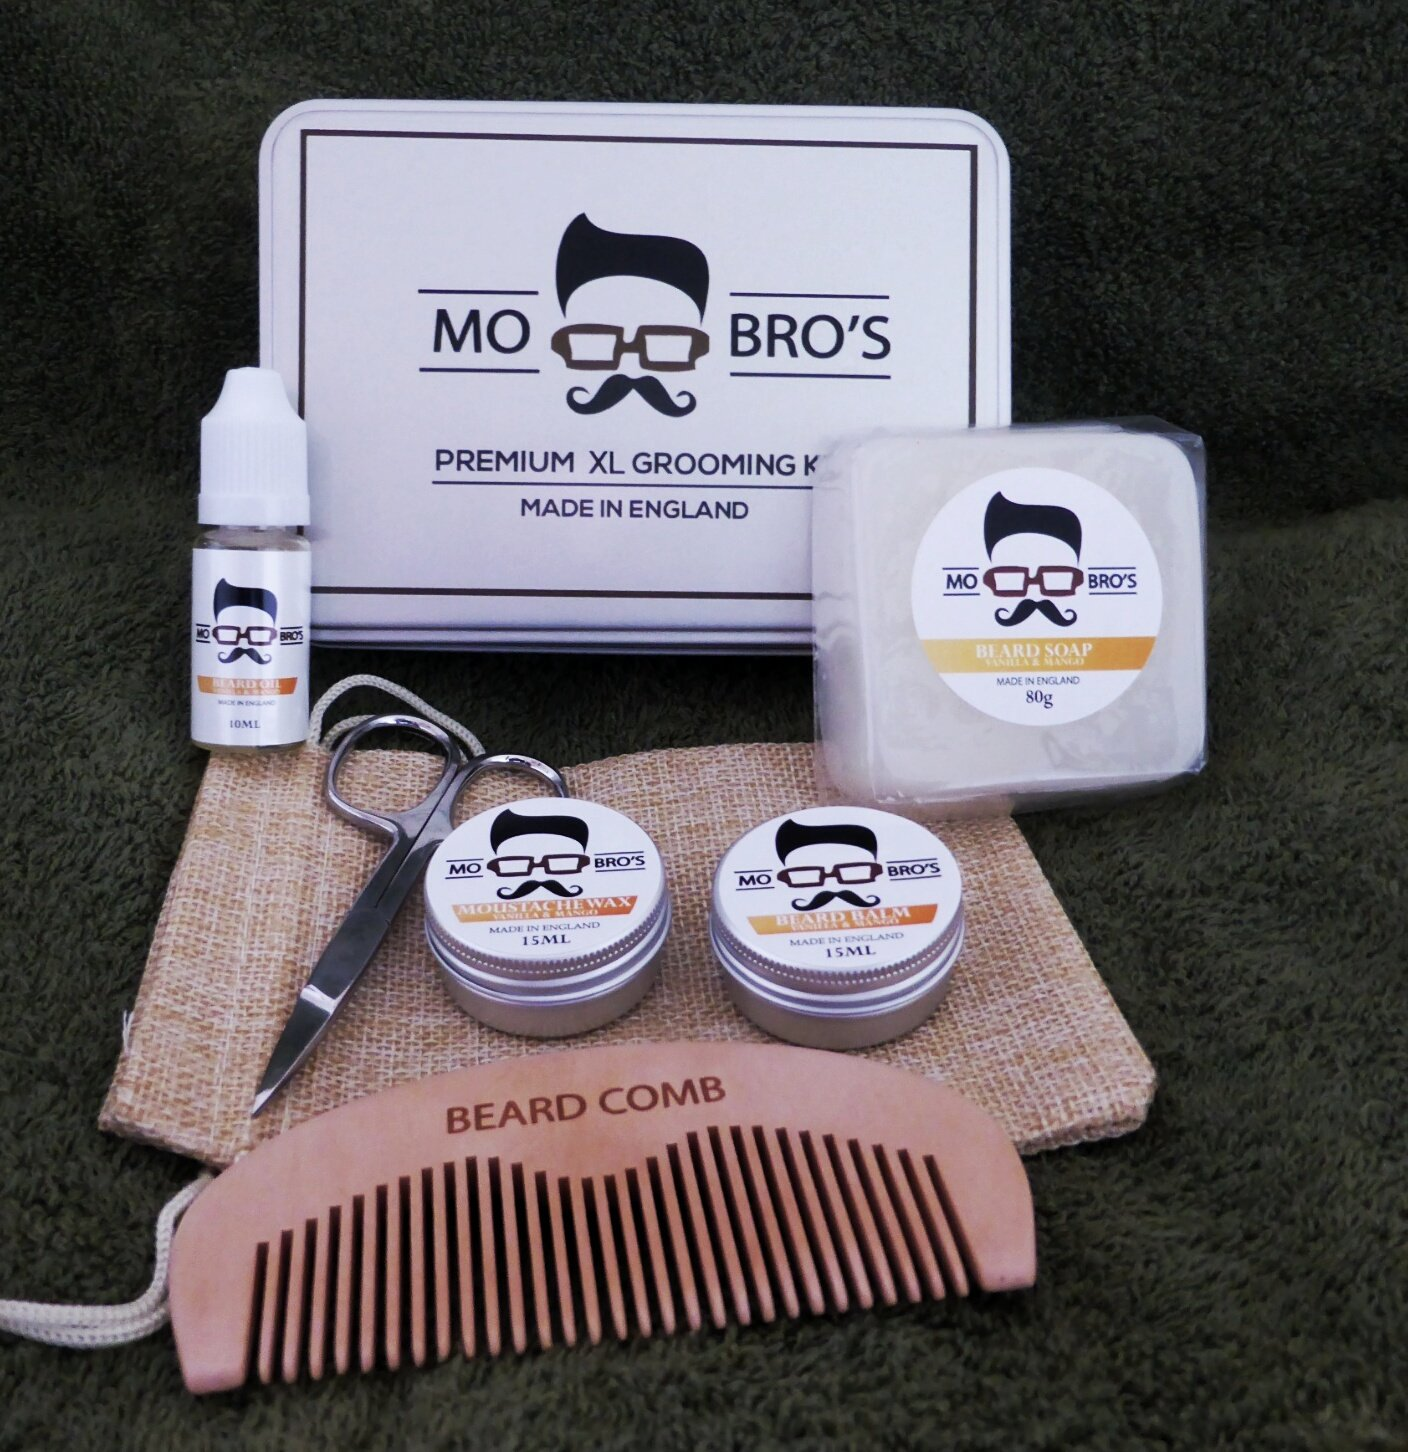 Mo Bro's XL Grooming Kit